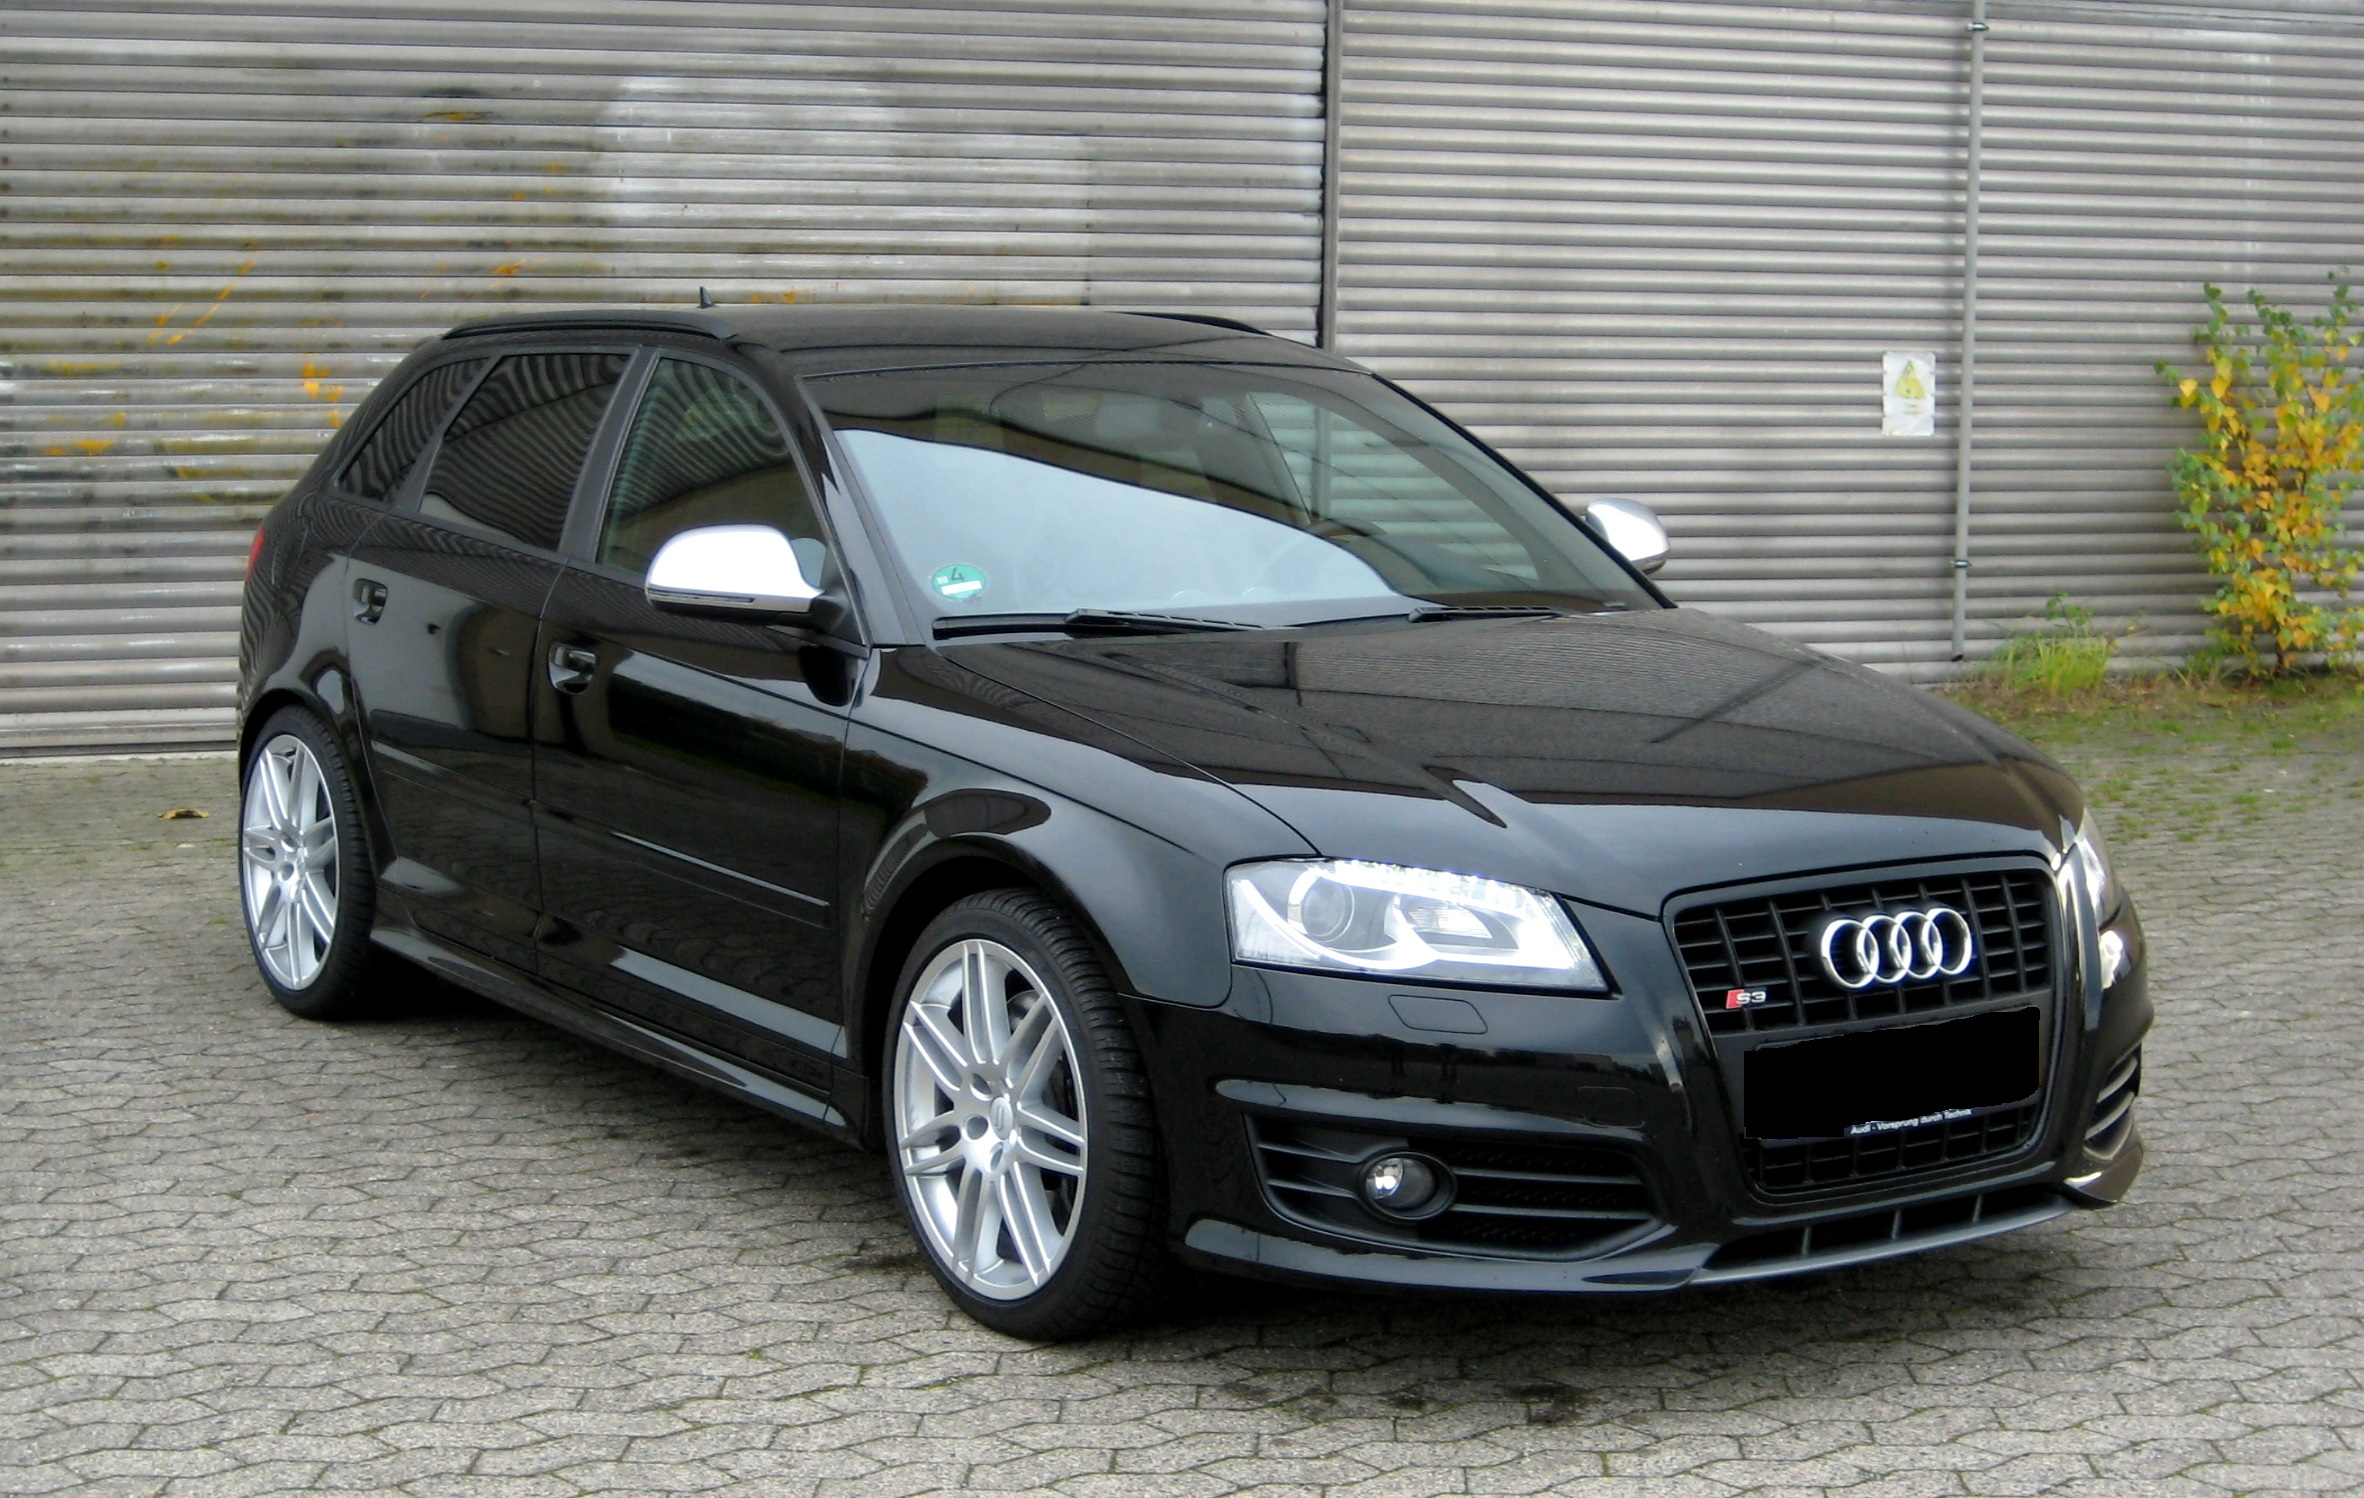 audi s3 a3 sportback rs schalen bose bi xenon biete. Black Bedroom Furniture Sets. Home Design Ideas